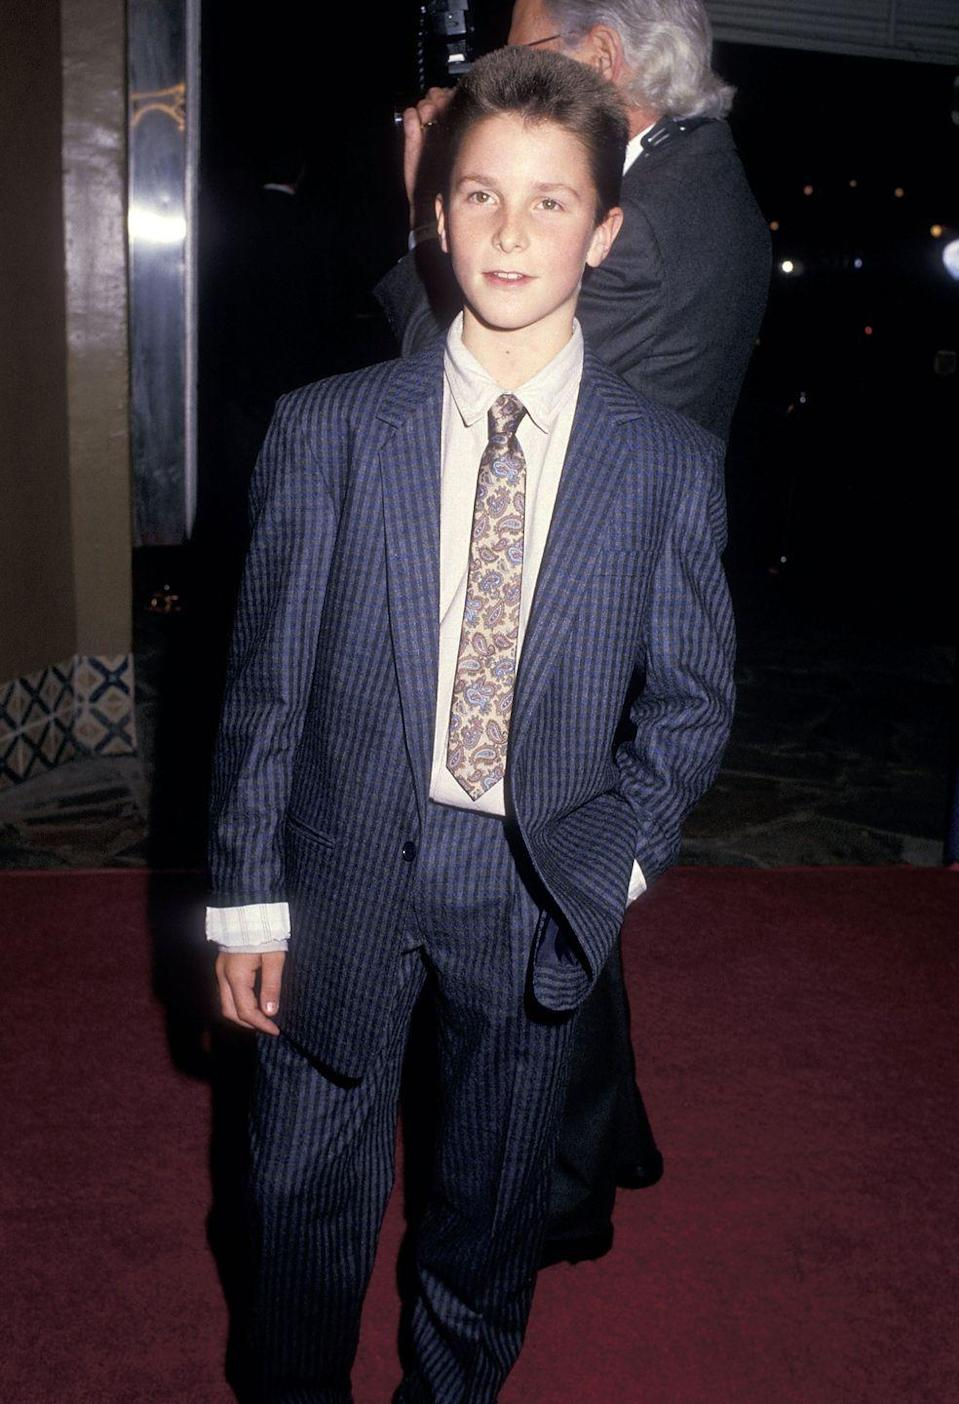 <p>Long before his days as <em>Batman</em>, Christian Bale banked some serious hours on the red carpet as a child actor. The actor served up his now-signature smile when he attended the premiere for his film <em>Empire of the Sun </em>in 1987. </p>